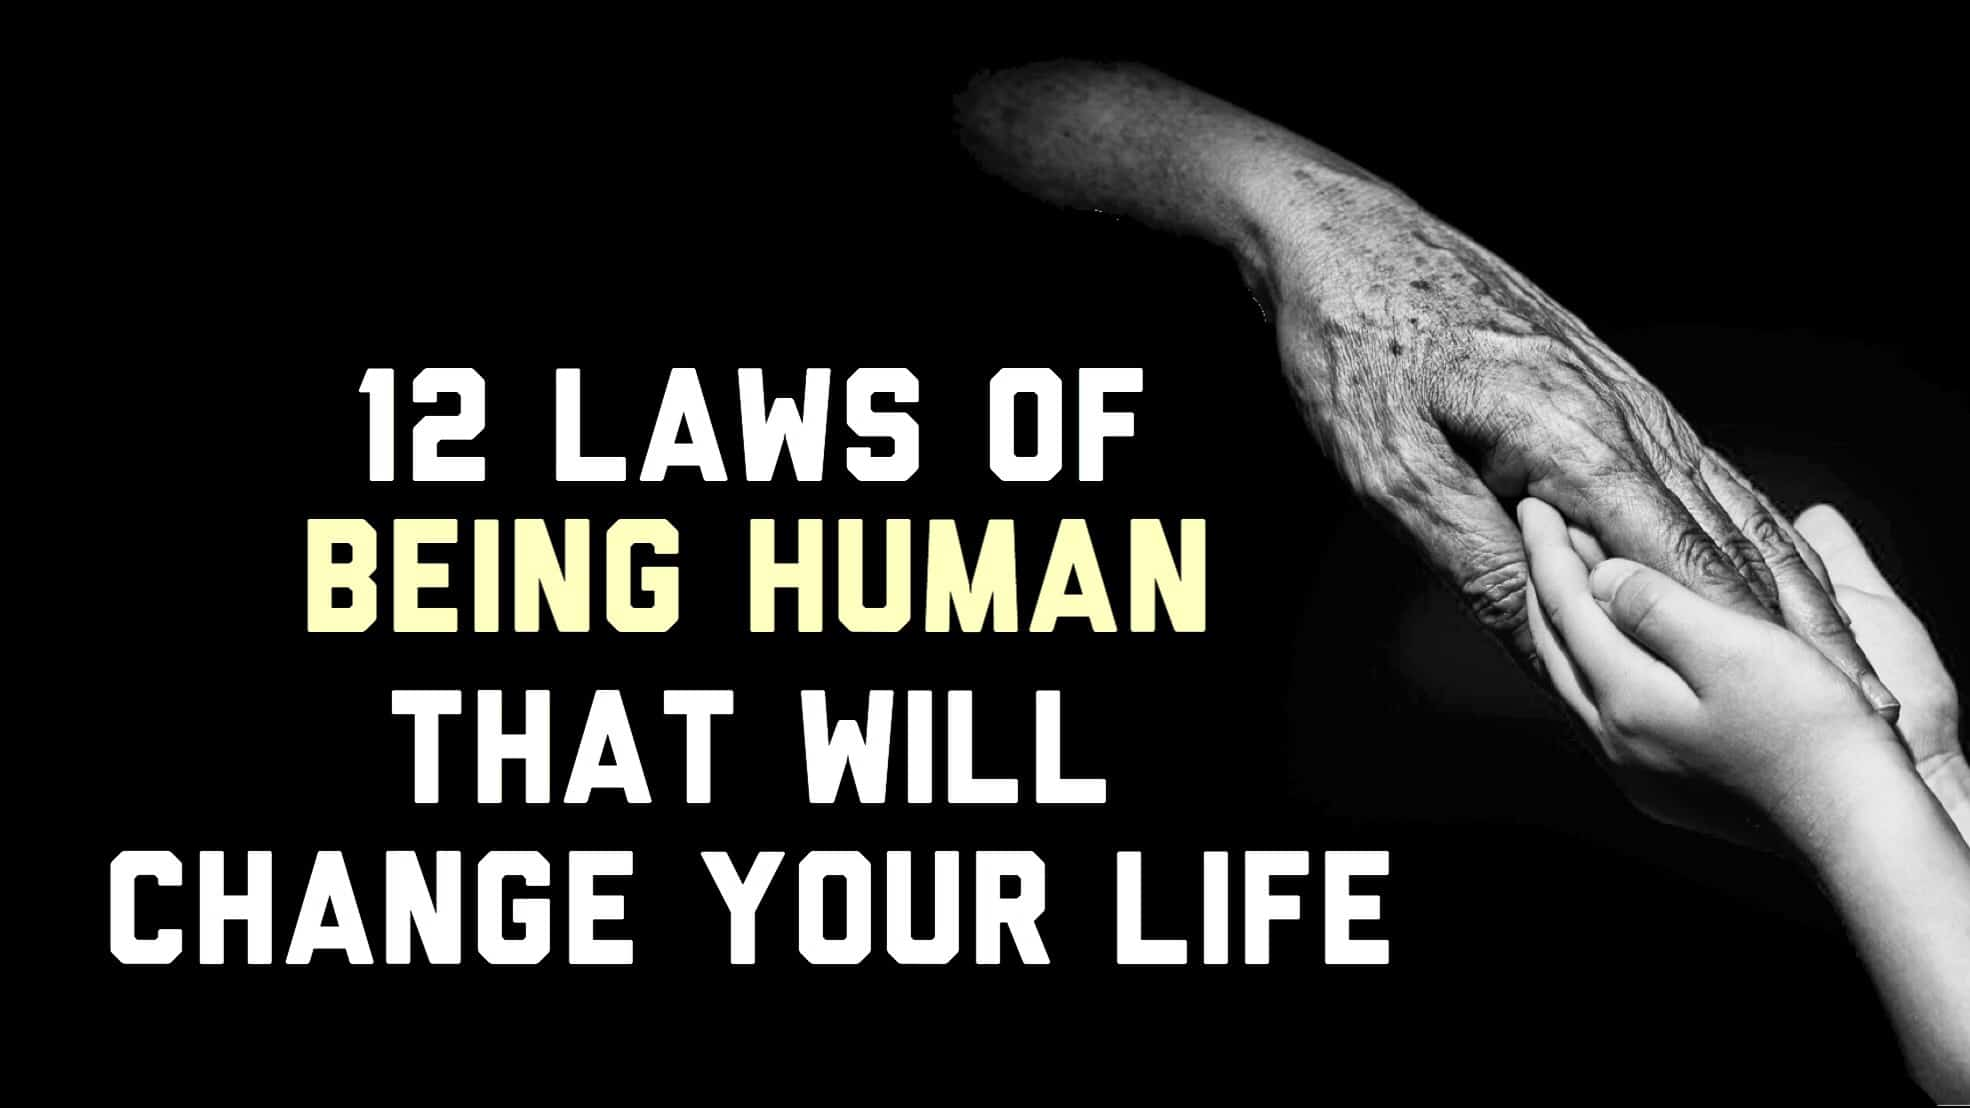 laws of being human